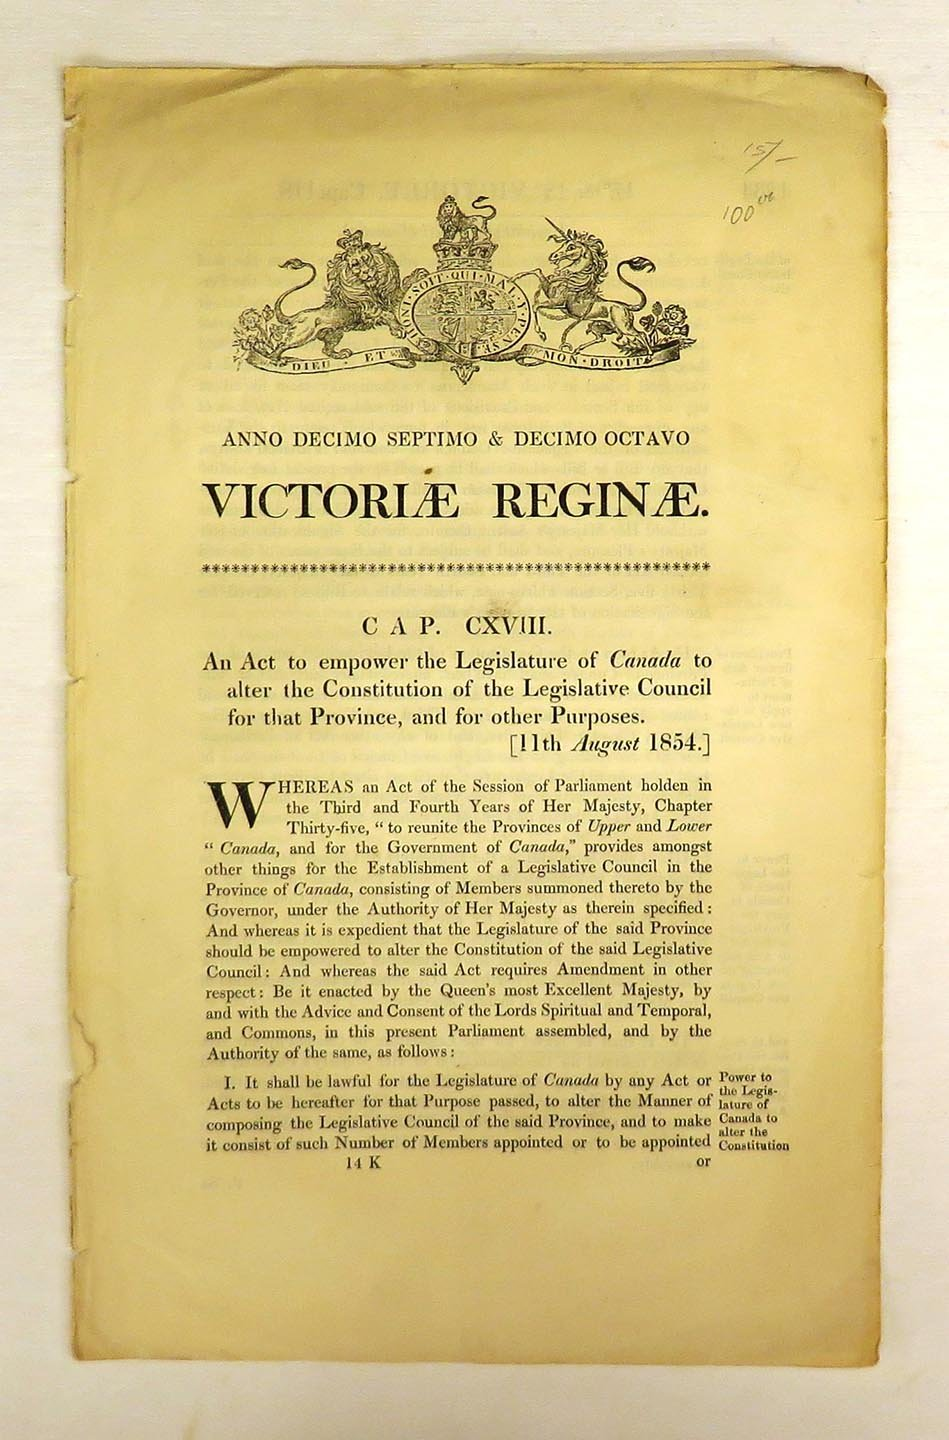 An Act to empower the Legislature of Canada to alter the Constitution of the Legislative Council for that Province, and for other Purposes